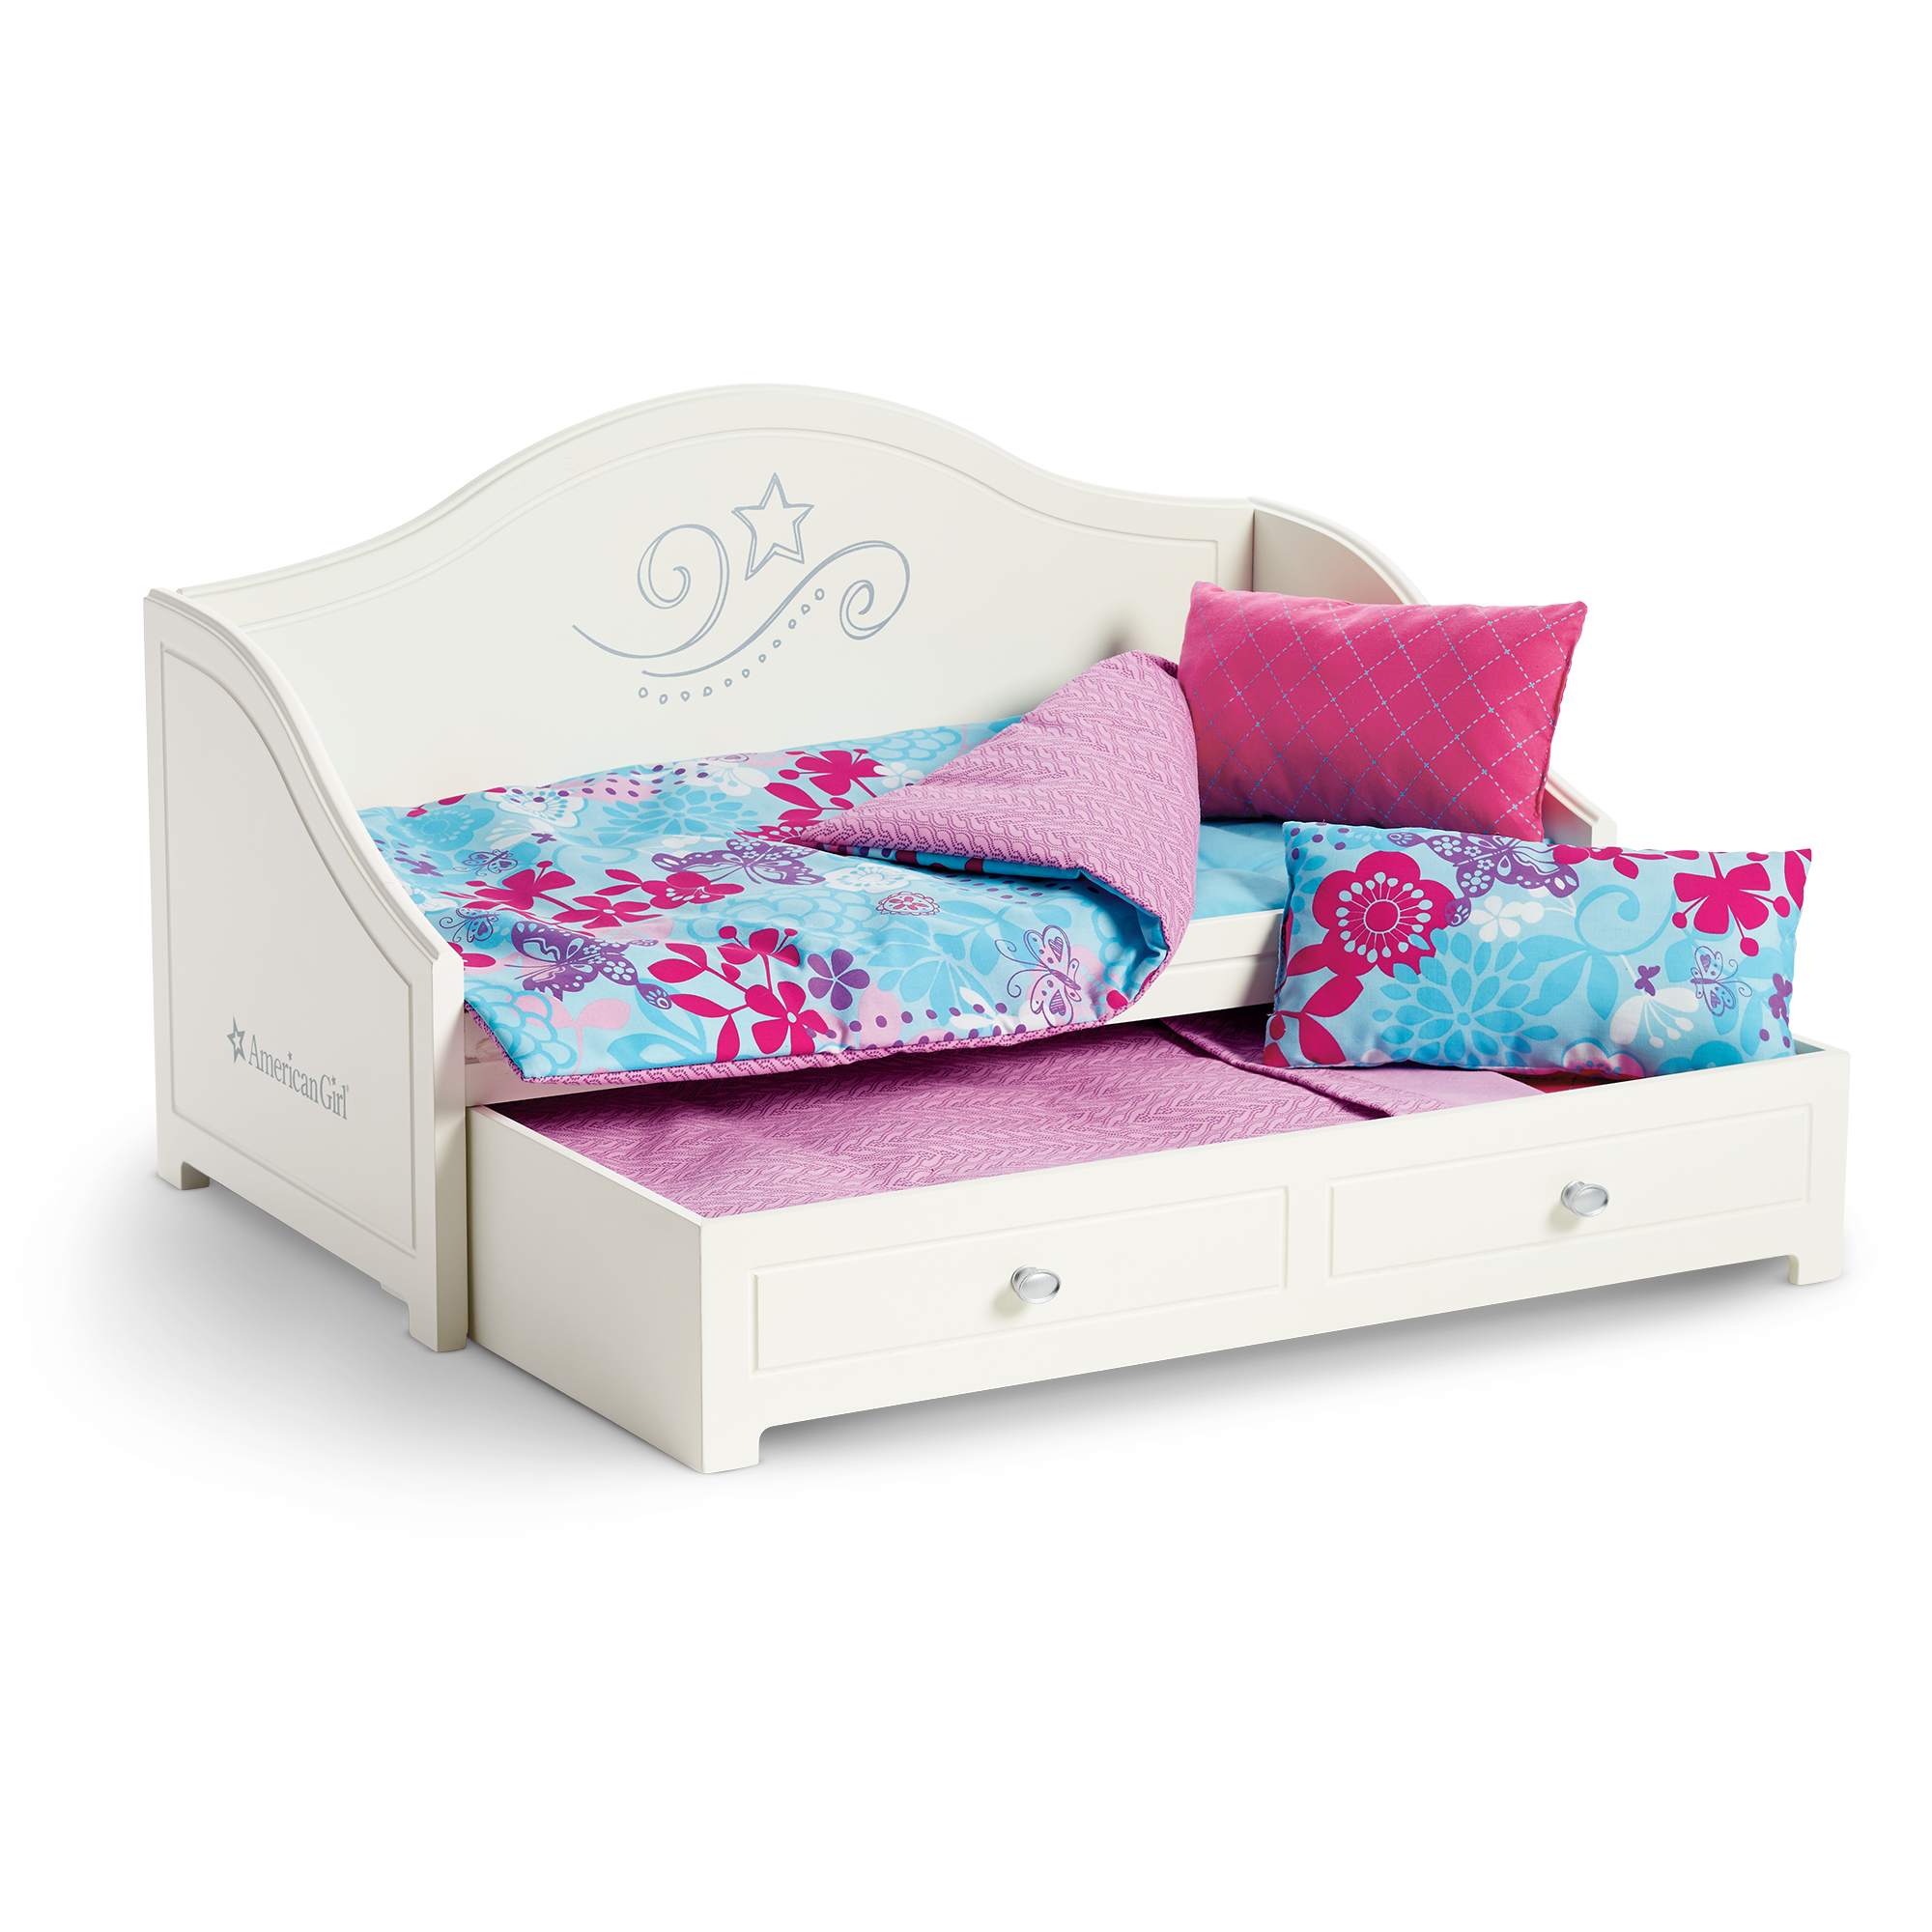 Trundle Bed and Bedding Set